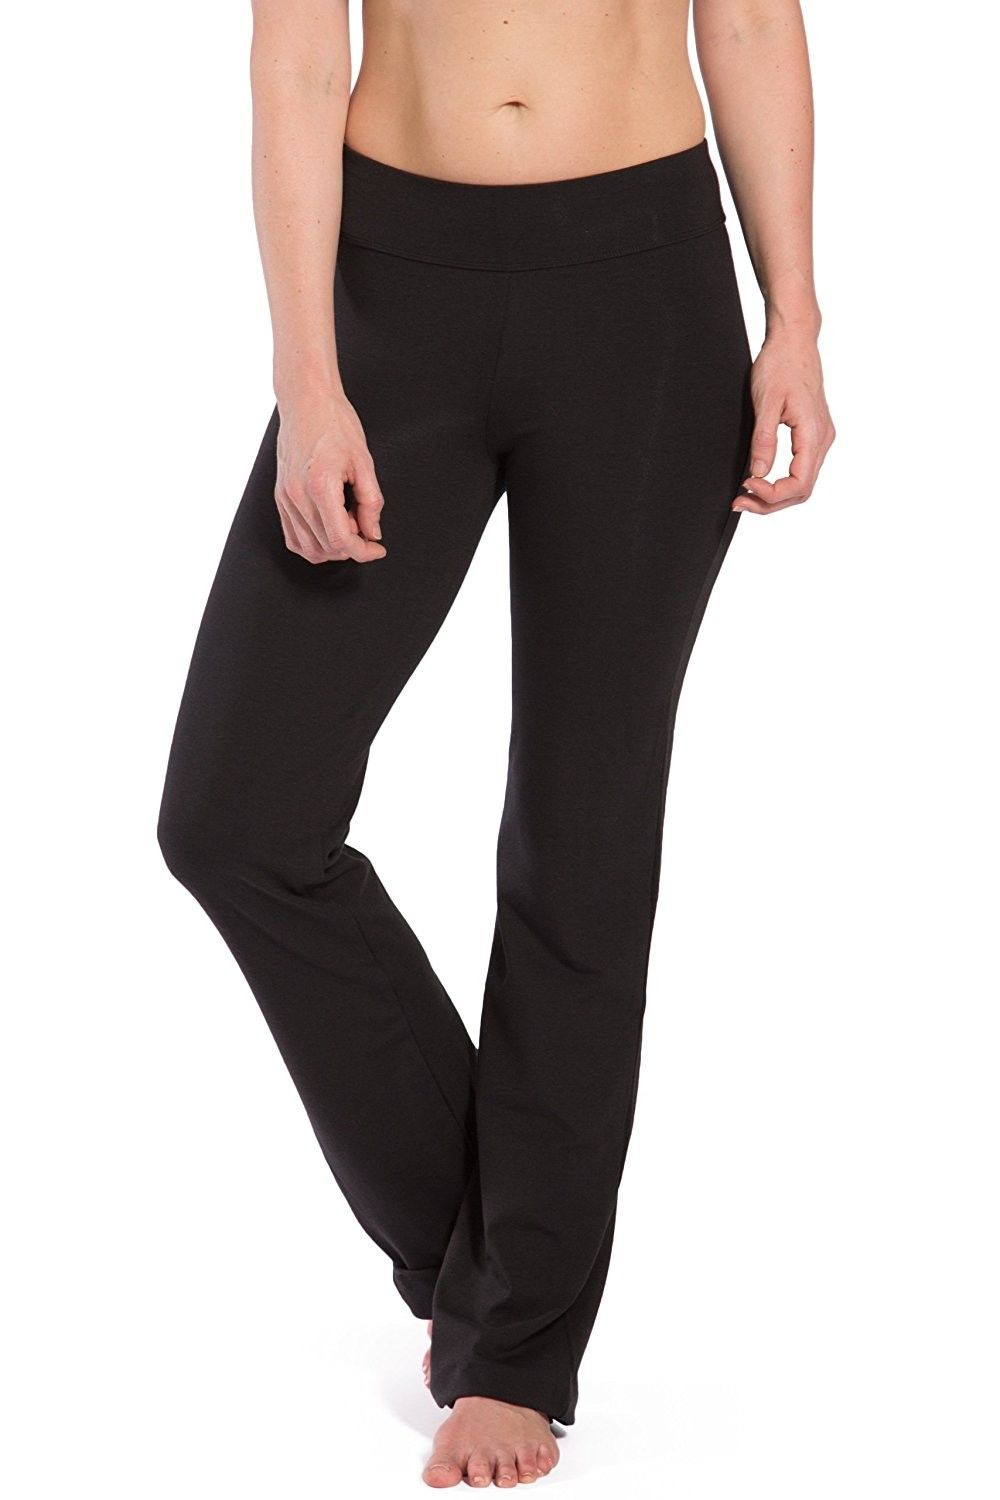 4f51a29ad541d Women's Clothing, Active, Active Pants, Women's Ecofabric Classic Bootleg  Yoga Pant - Back Pockets - Black - C212GTYDADF #women #fashion #clothing  #style ...